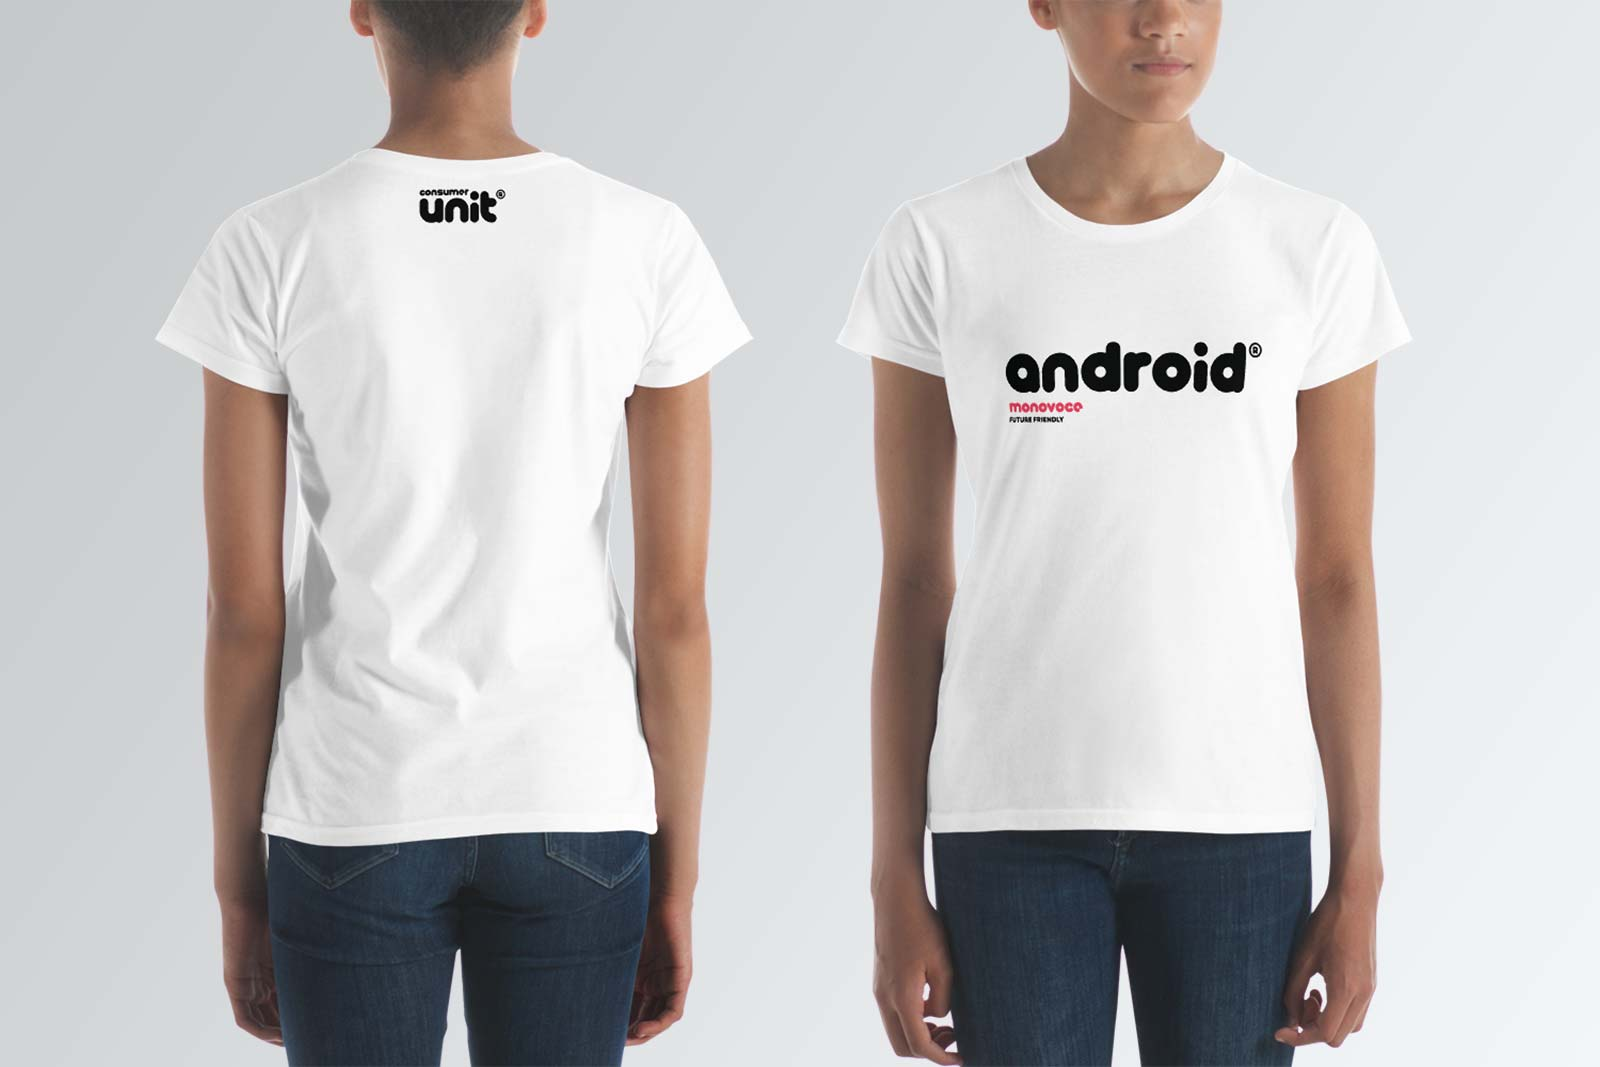 Android t-shirt for women in white